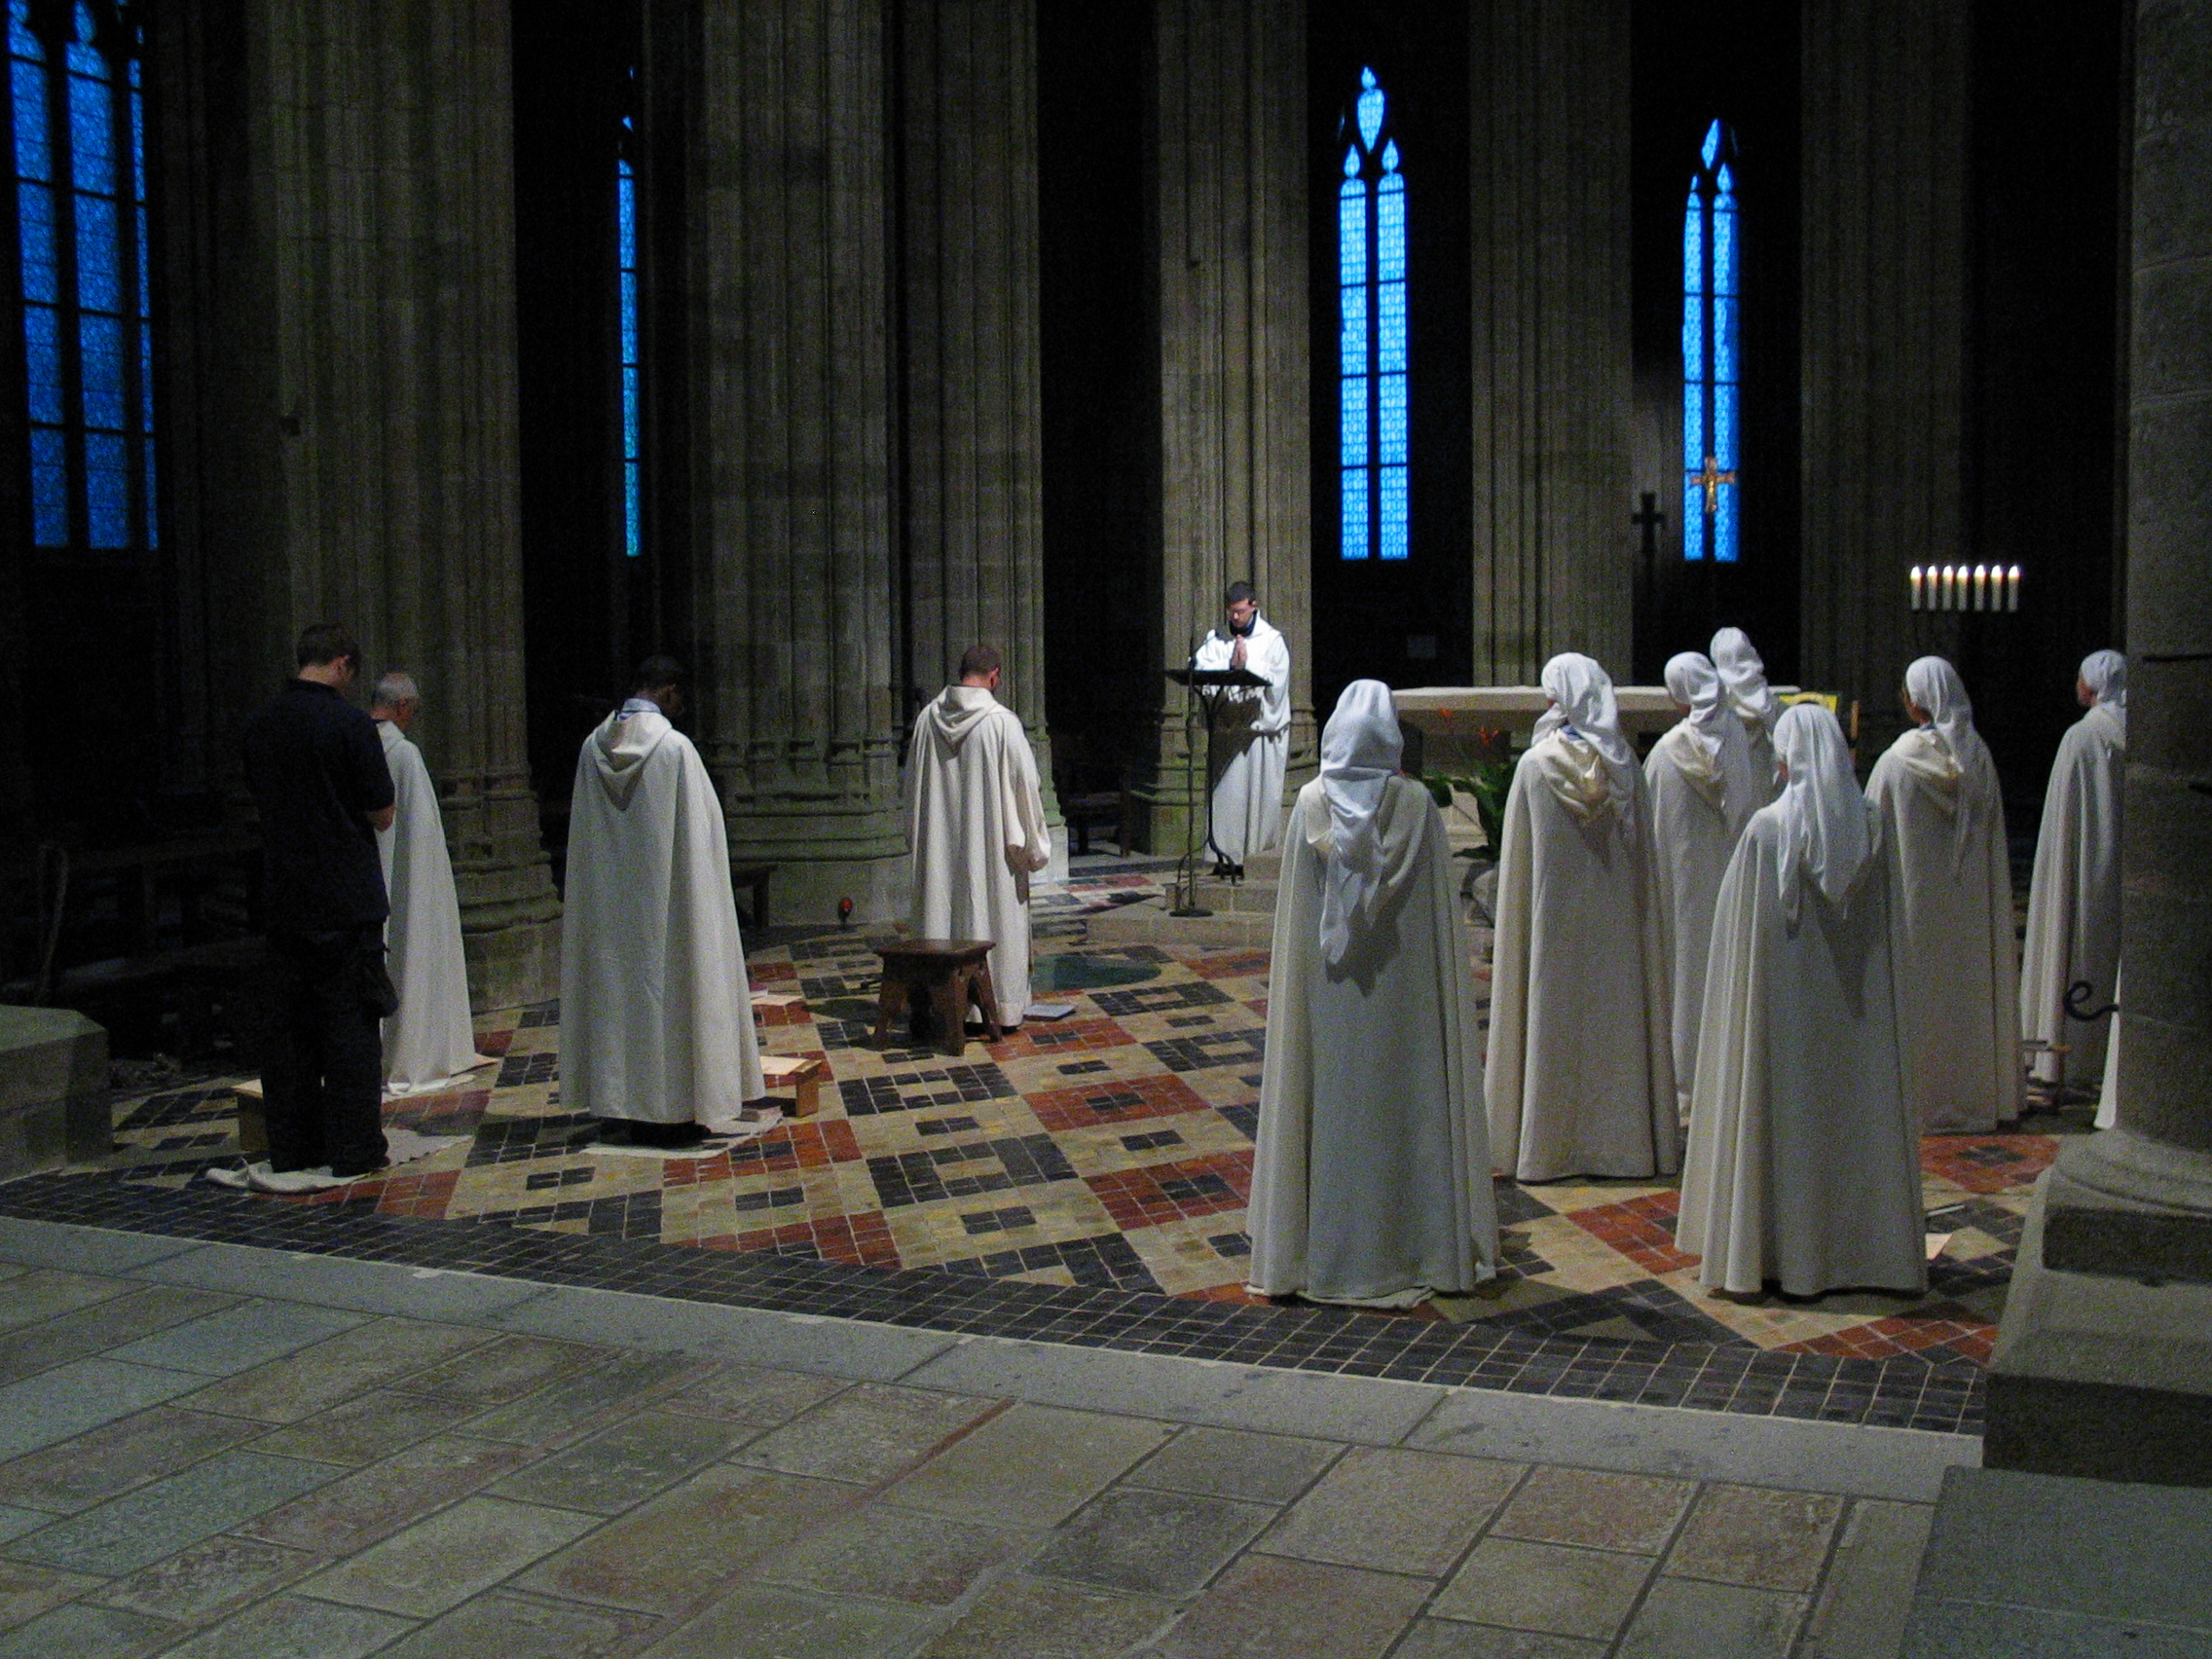 nature characters humanoids cathedral church ceremony monk monks religion priest sermon geoff_vane